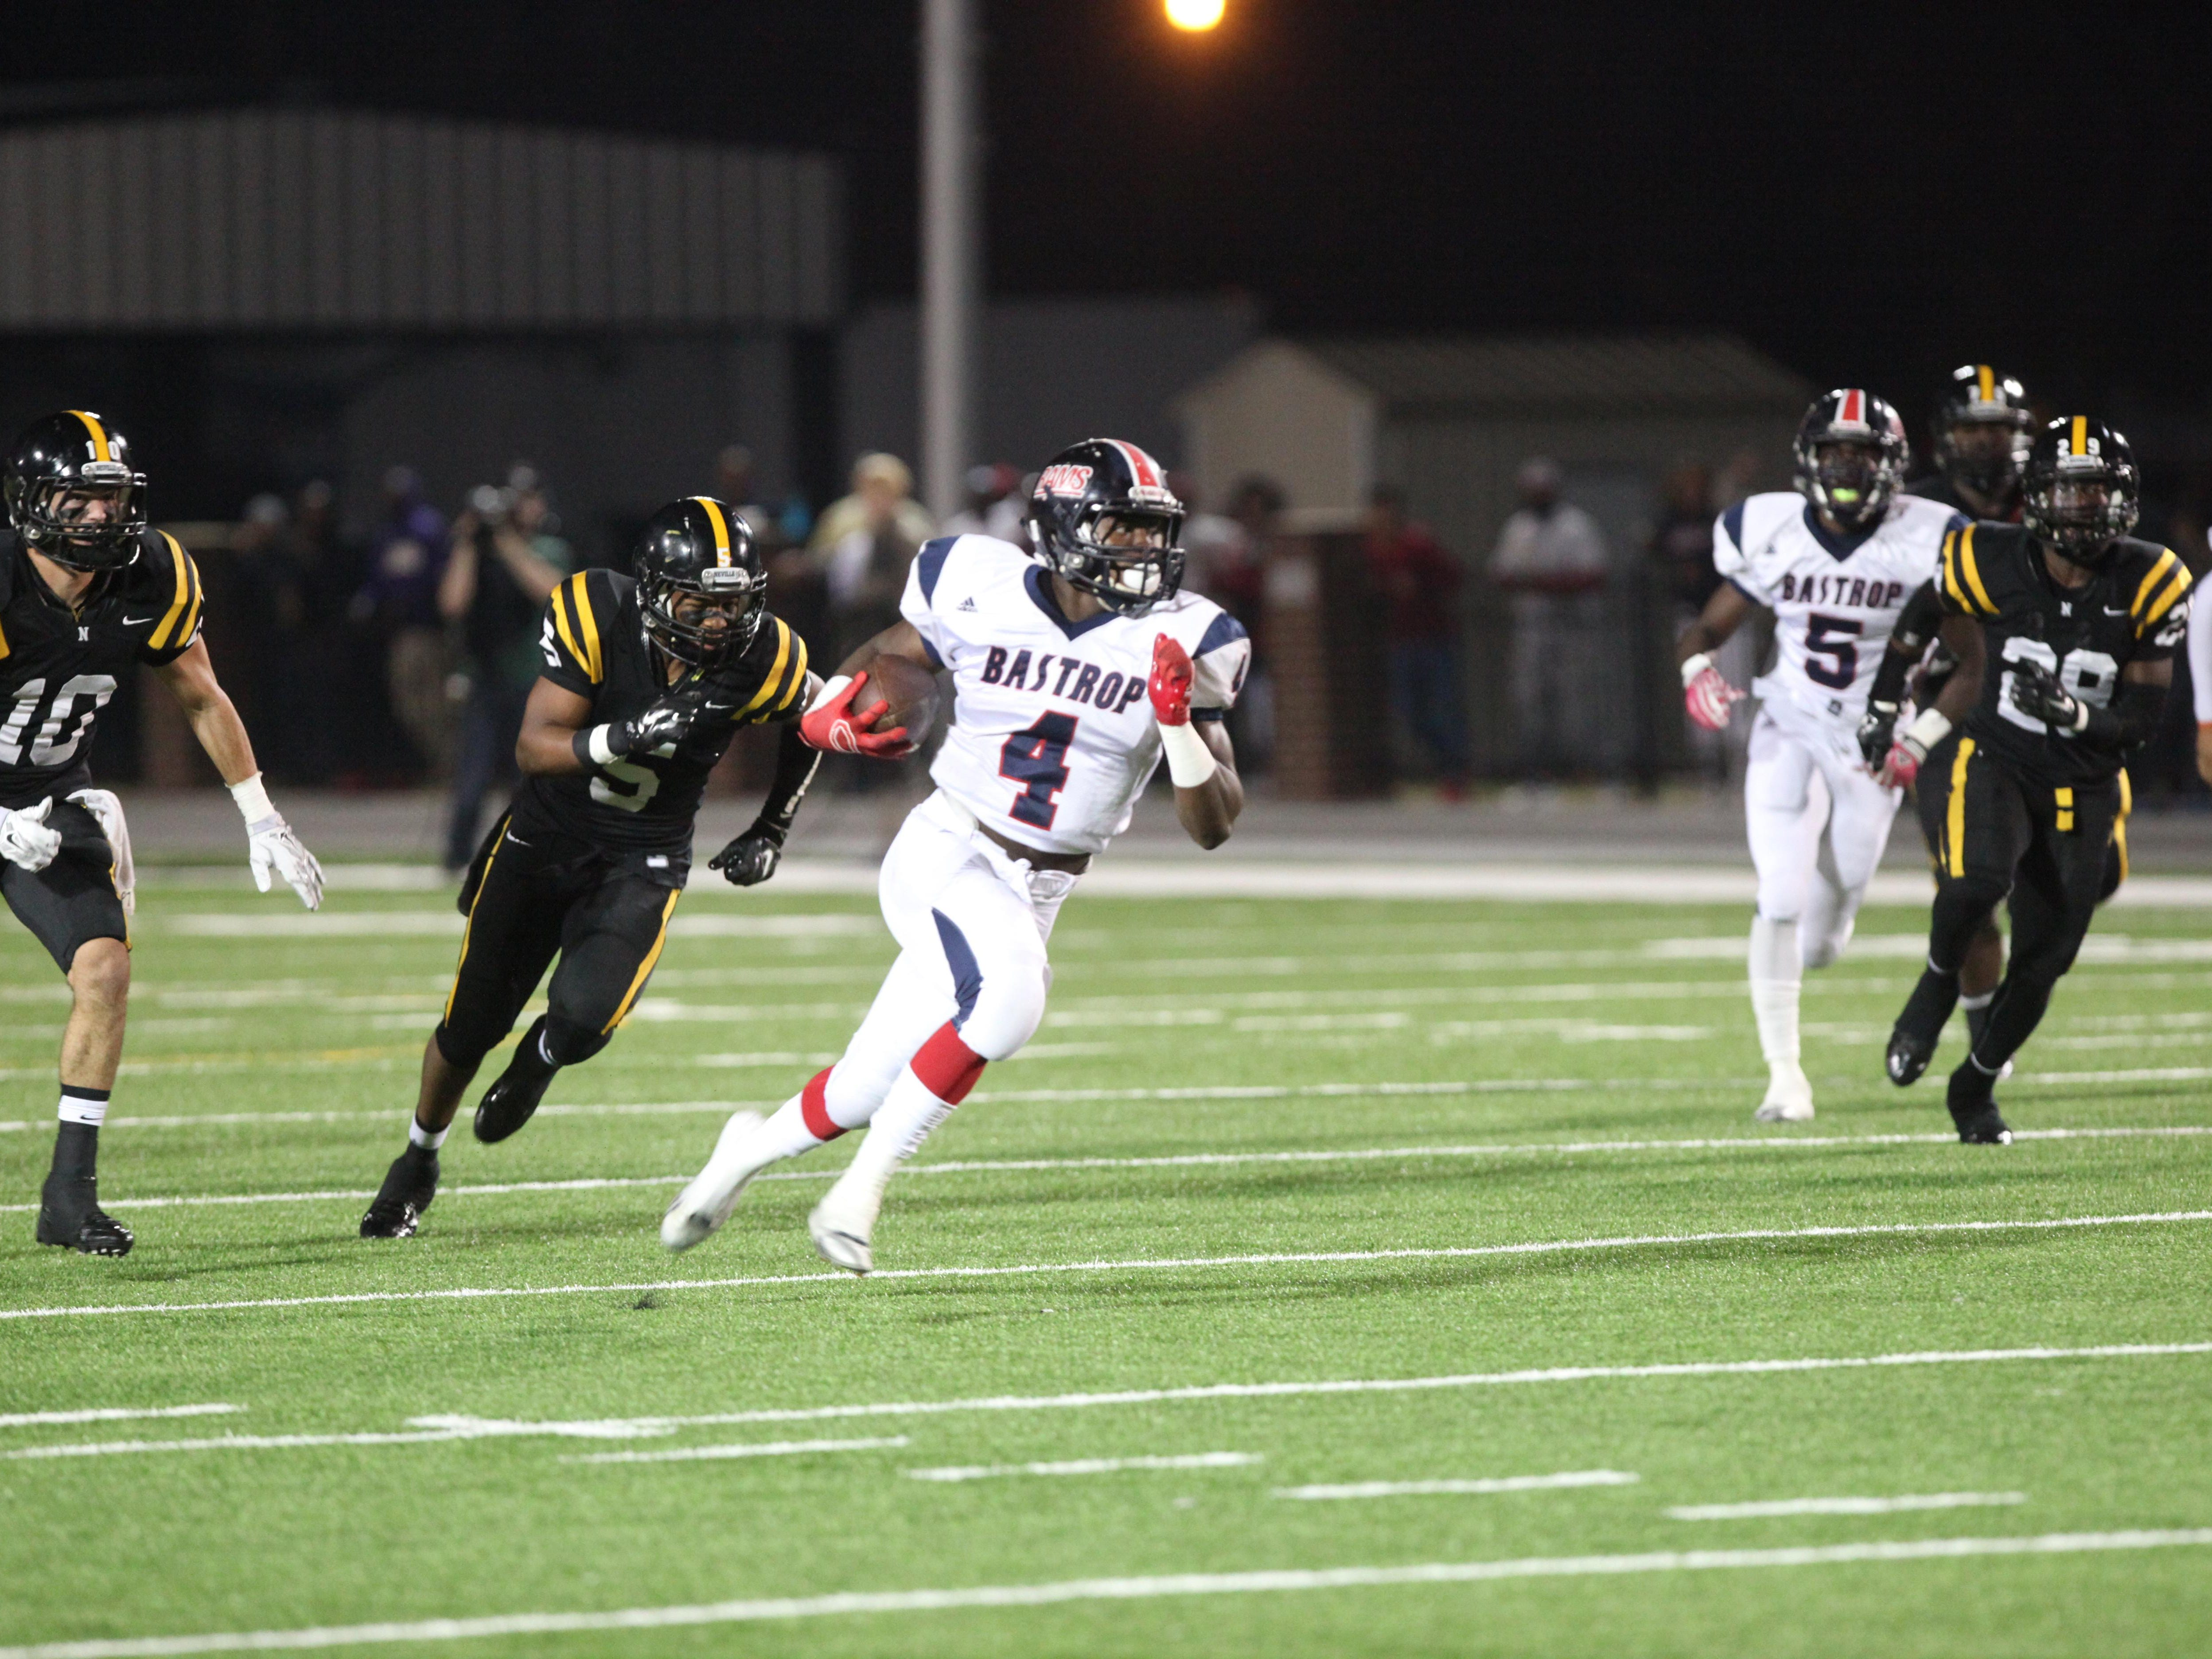 Bastrop quarterback Jerry Powell won the Cooper Buick GMC High School Hero voting for Week 12 with more than 65 percent of the votes.